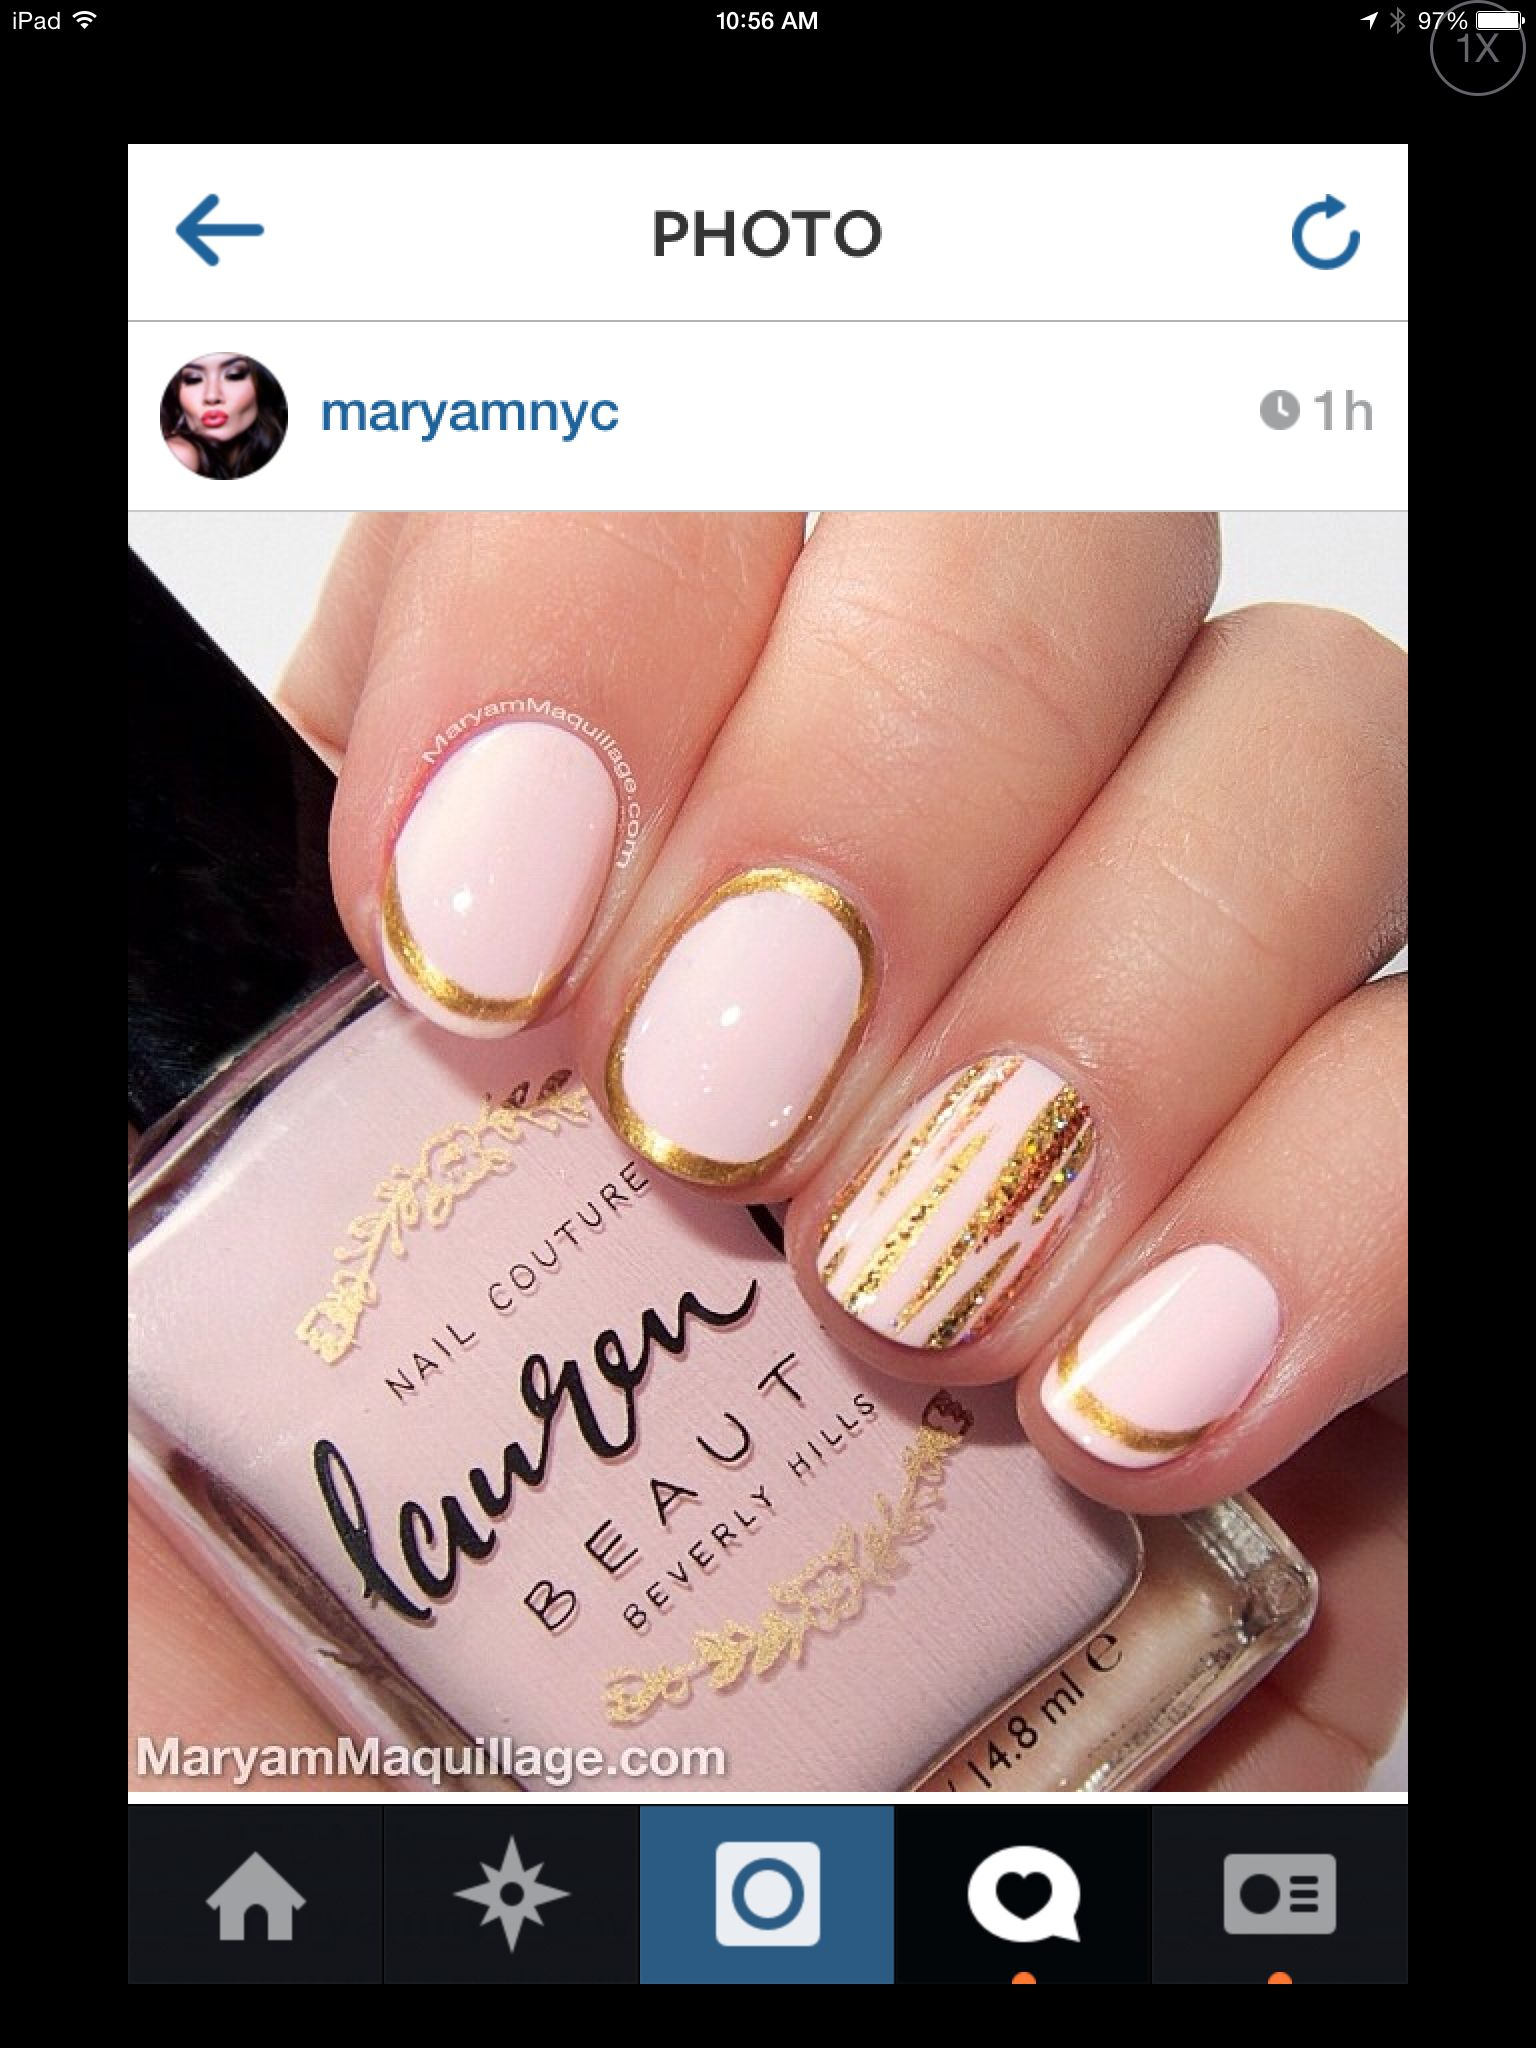 Check out this amazing nail art from maryammaquillage using our